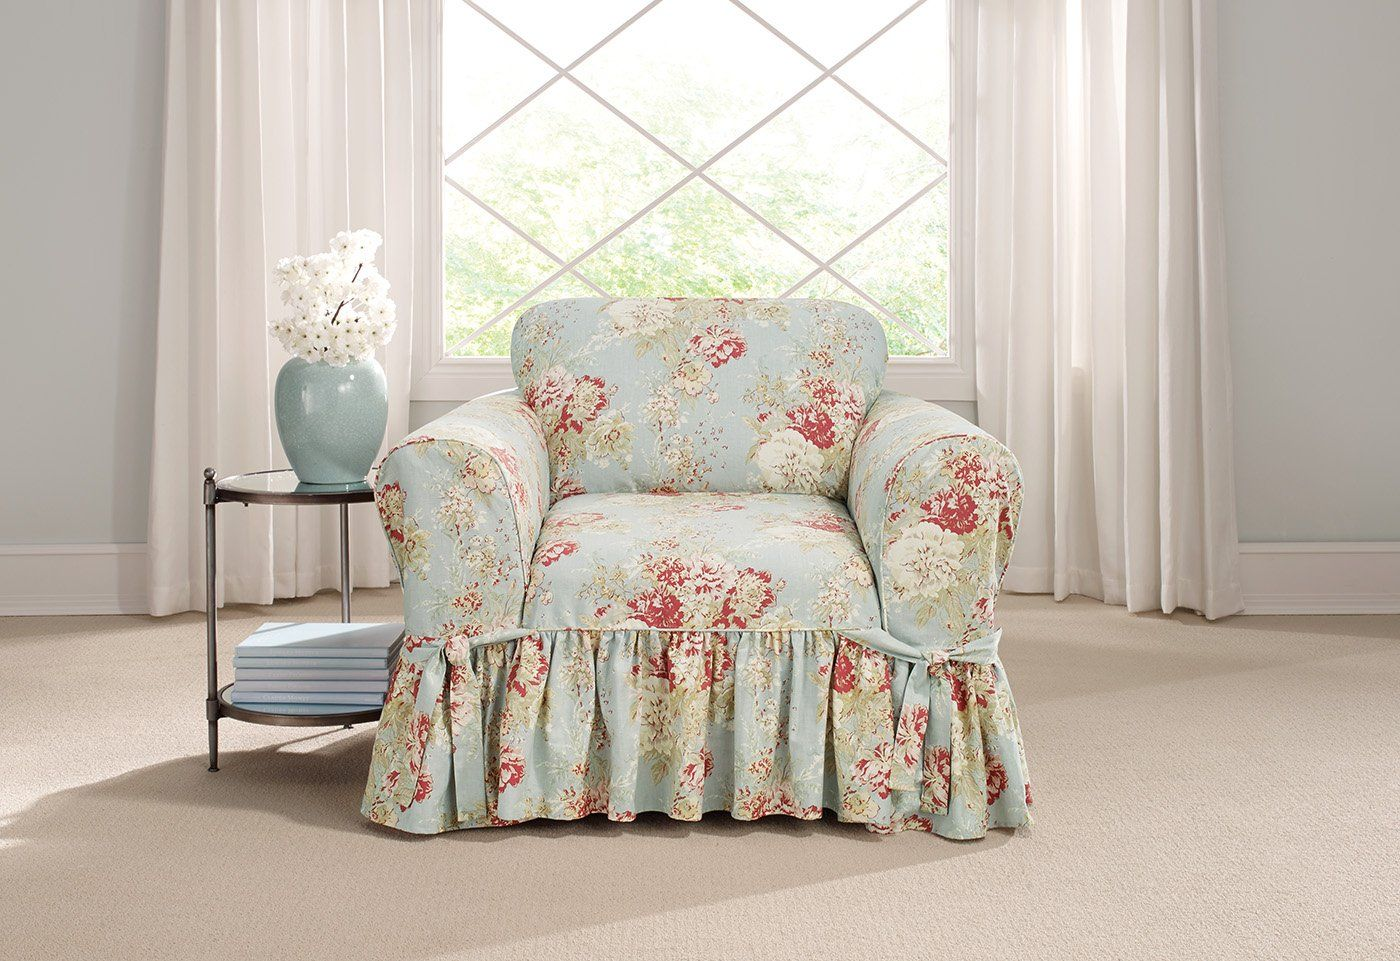 Enjoyable Ballad Bouquet By Waverly One Piece Chair Slipcover In 2019 Alphanode Cool Chair Designs And Ideas Alphanodeonline